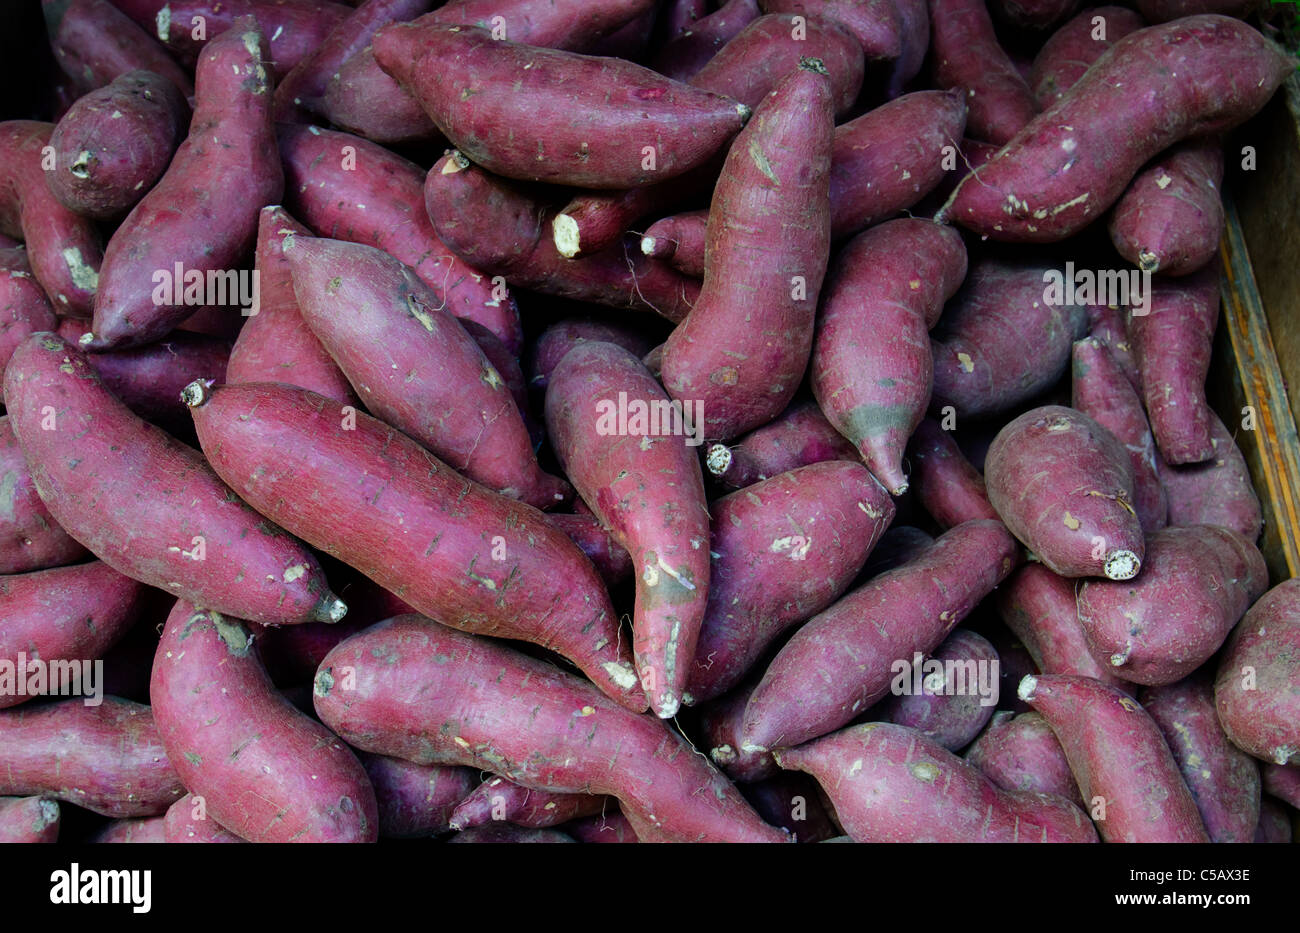 Red skinned sweet potatoes in a farmers market - Stock Image